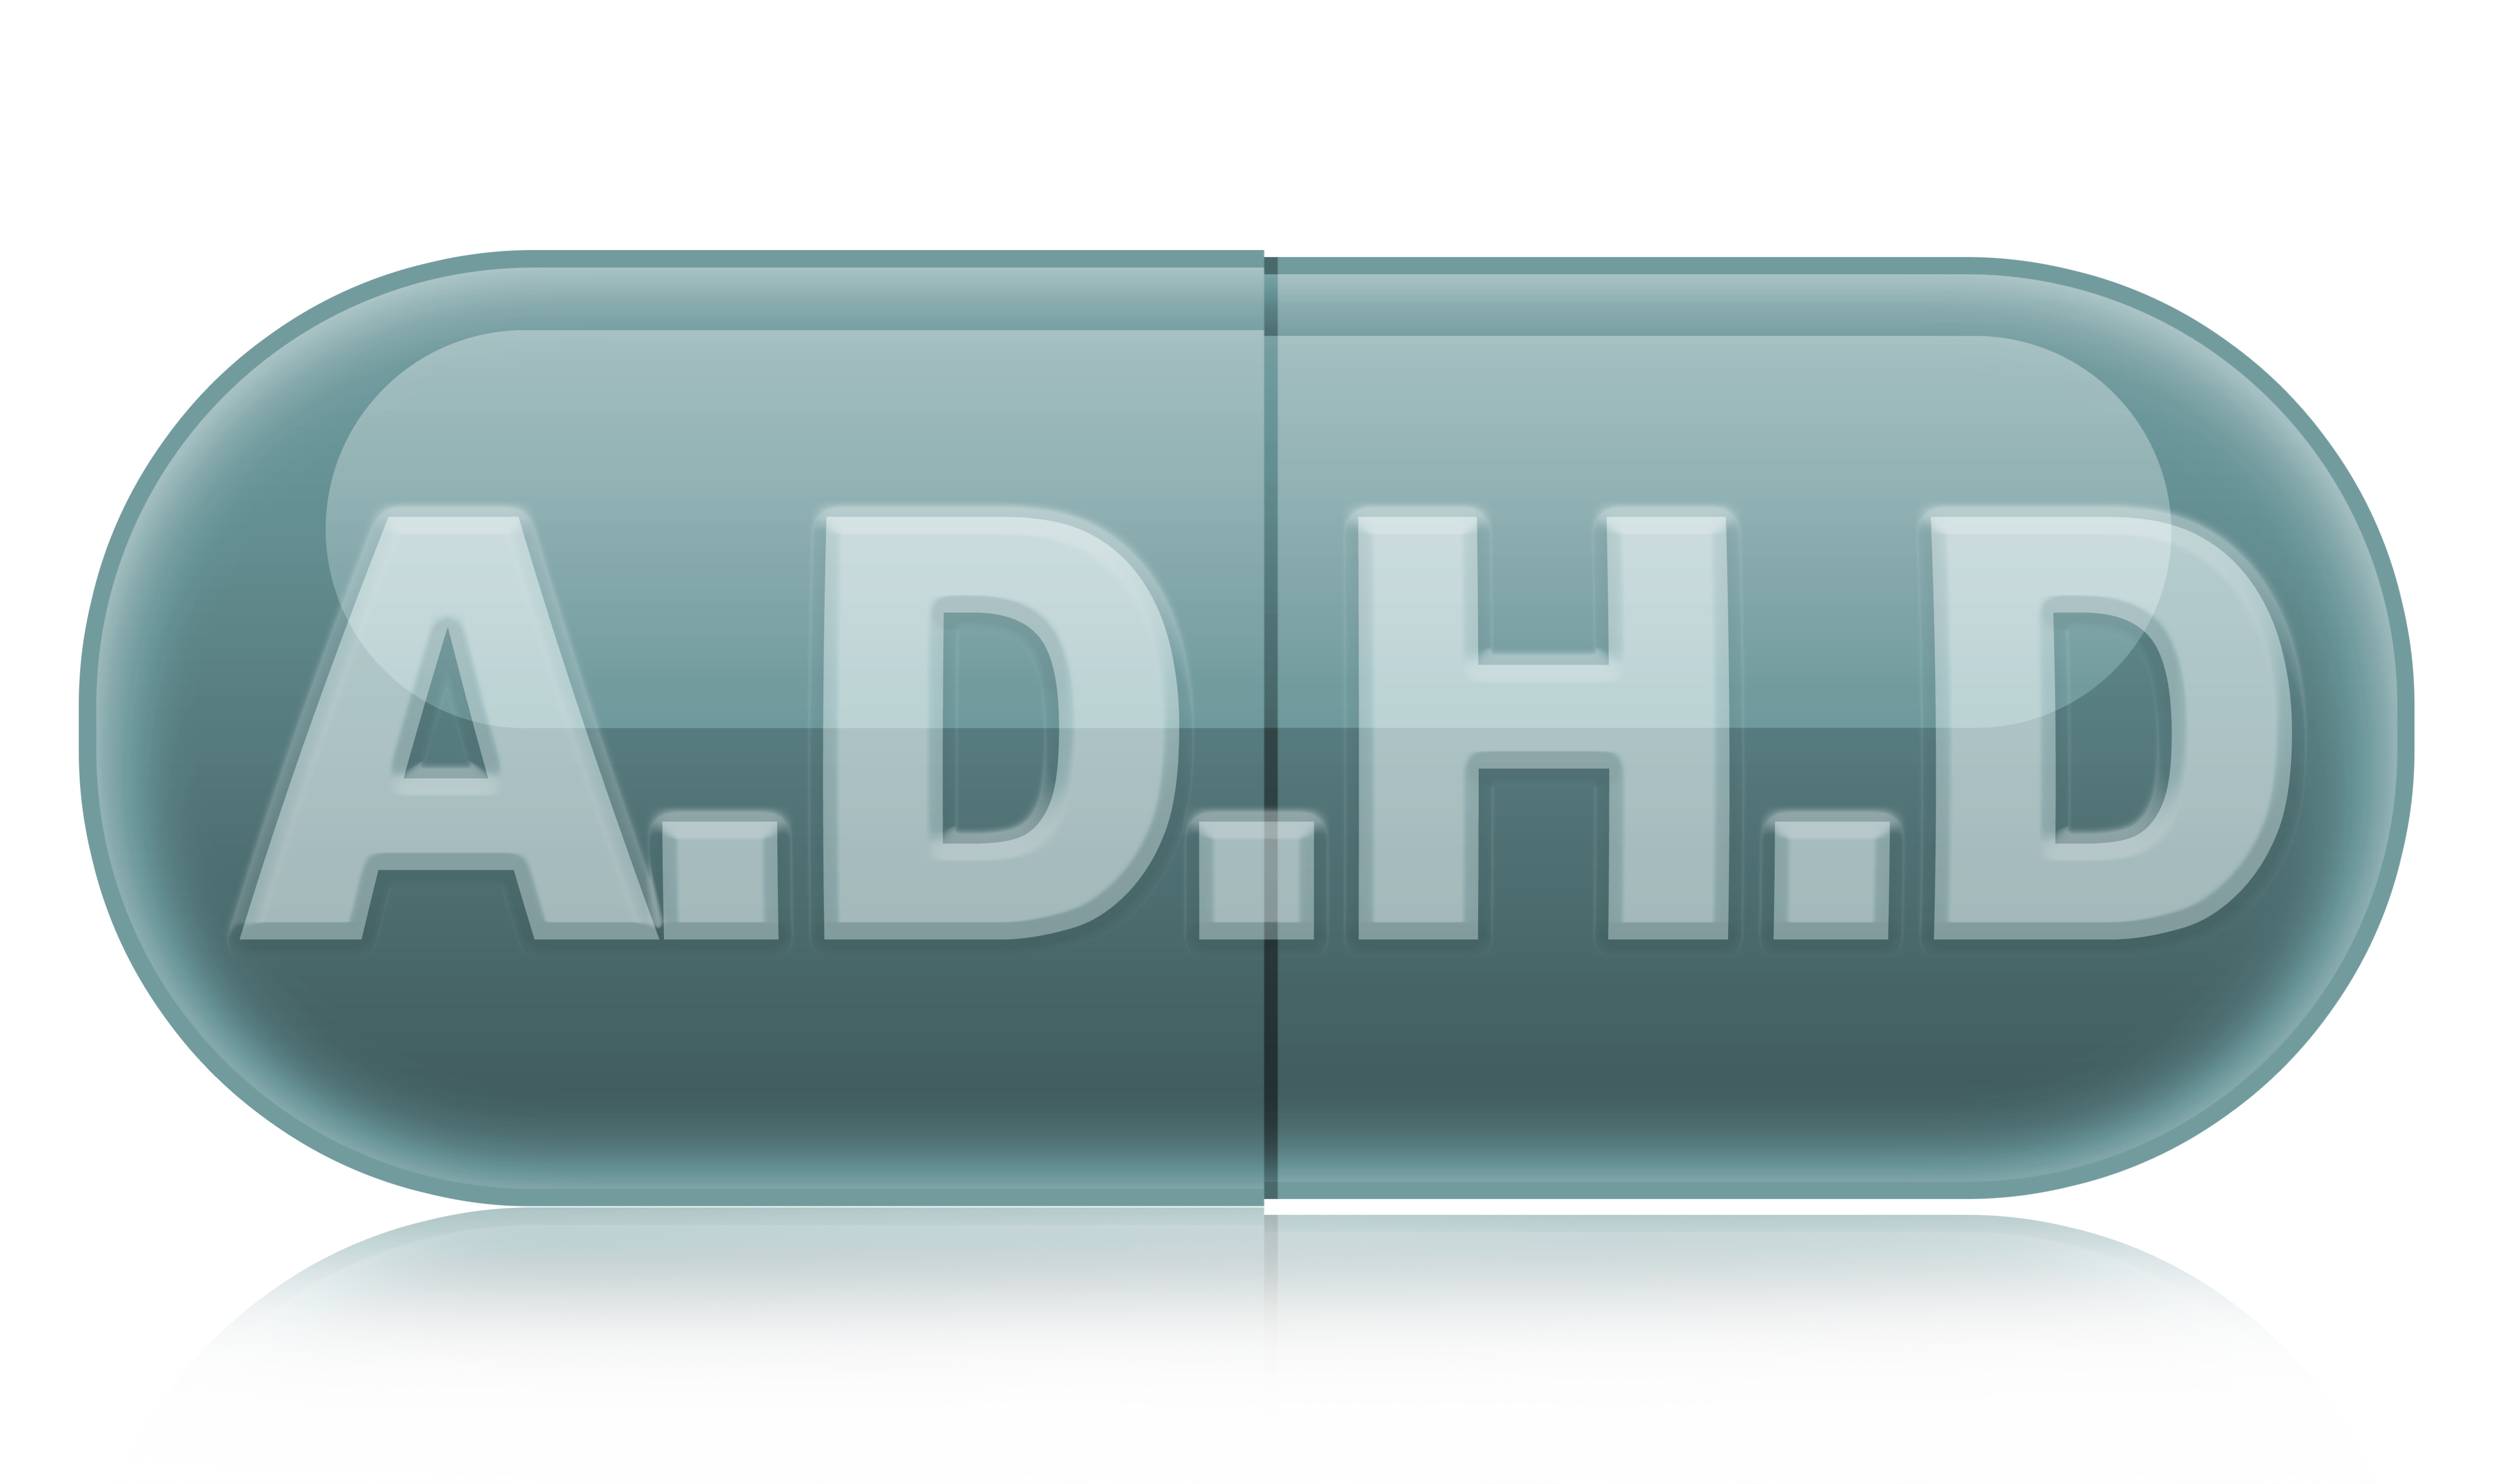 how to get tested for add adhd